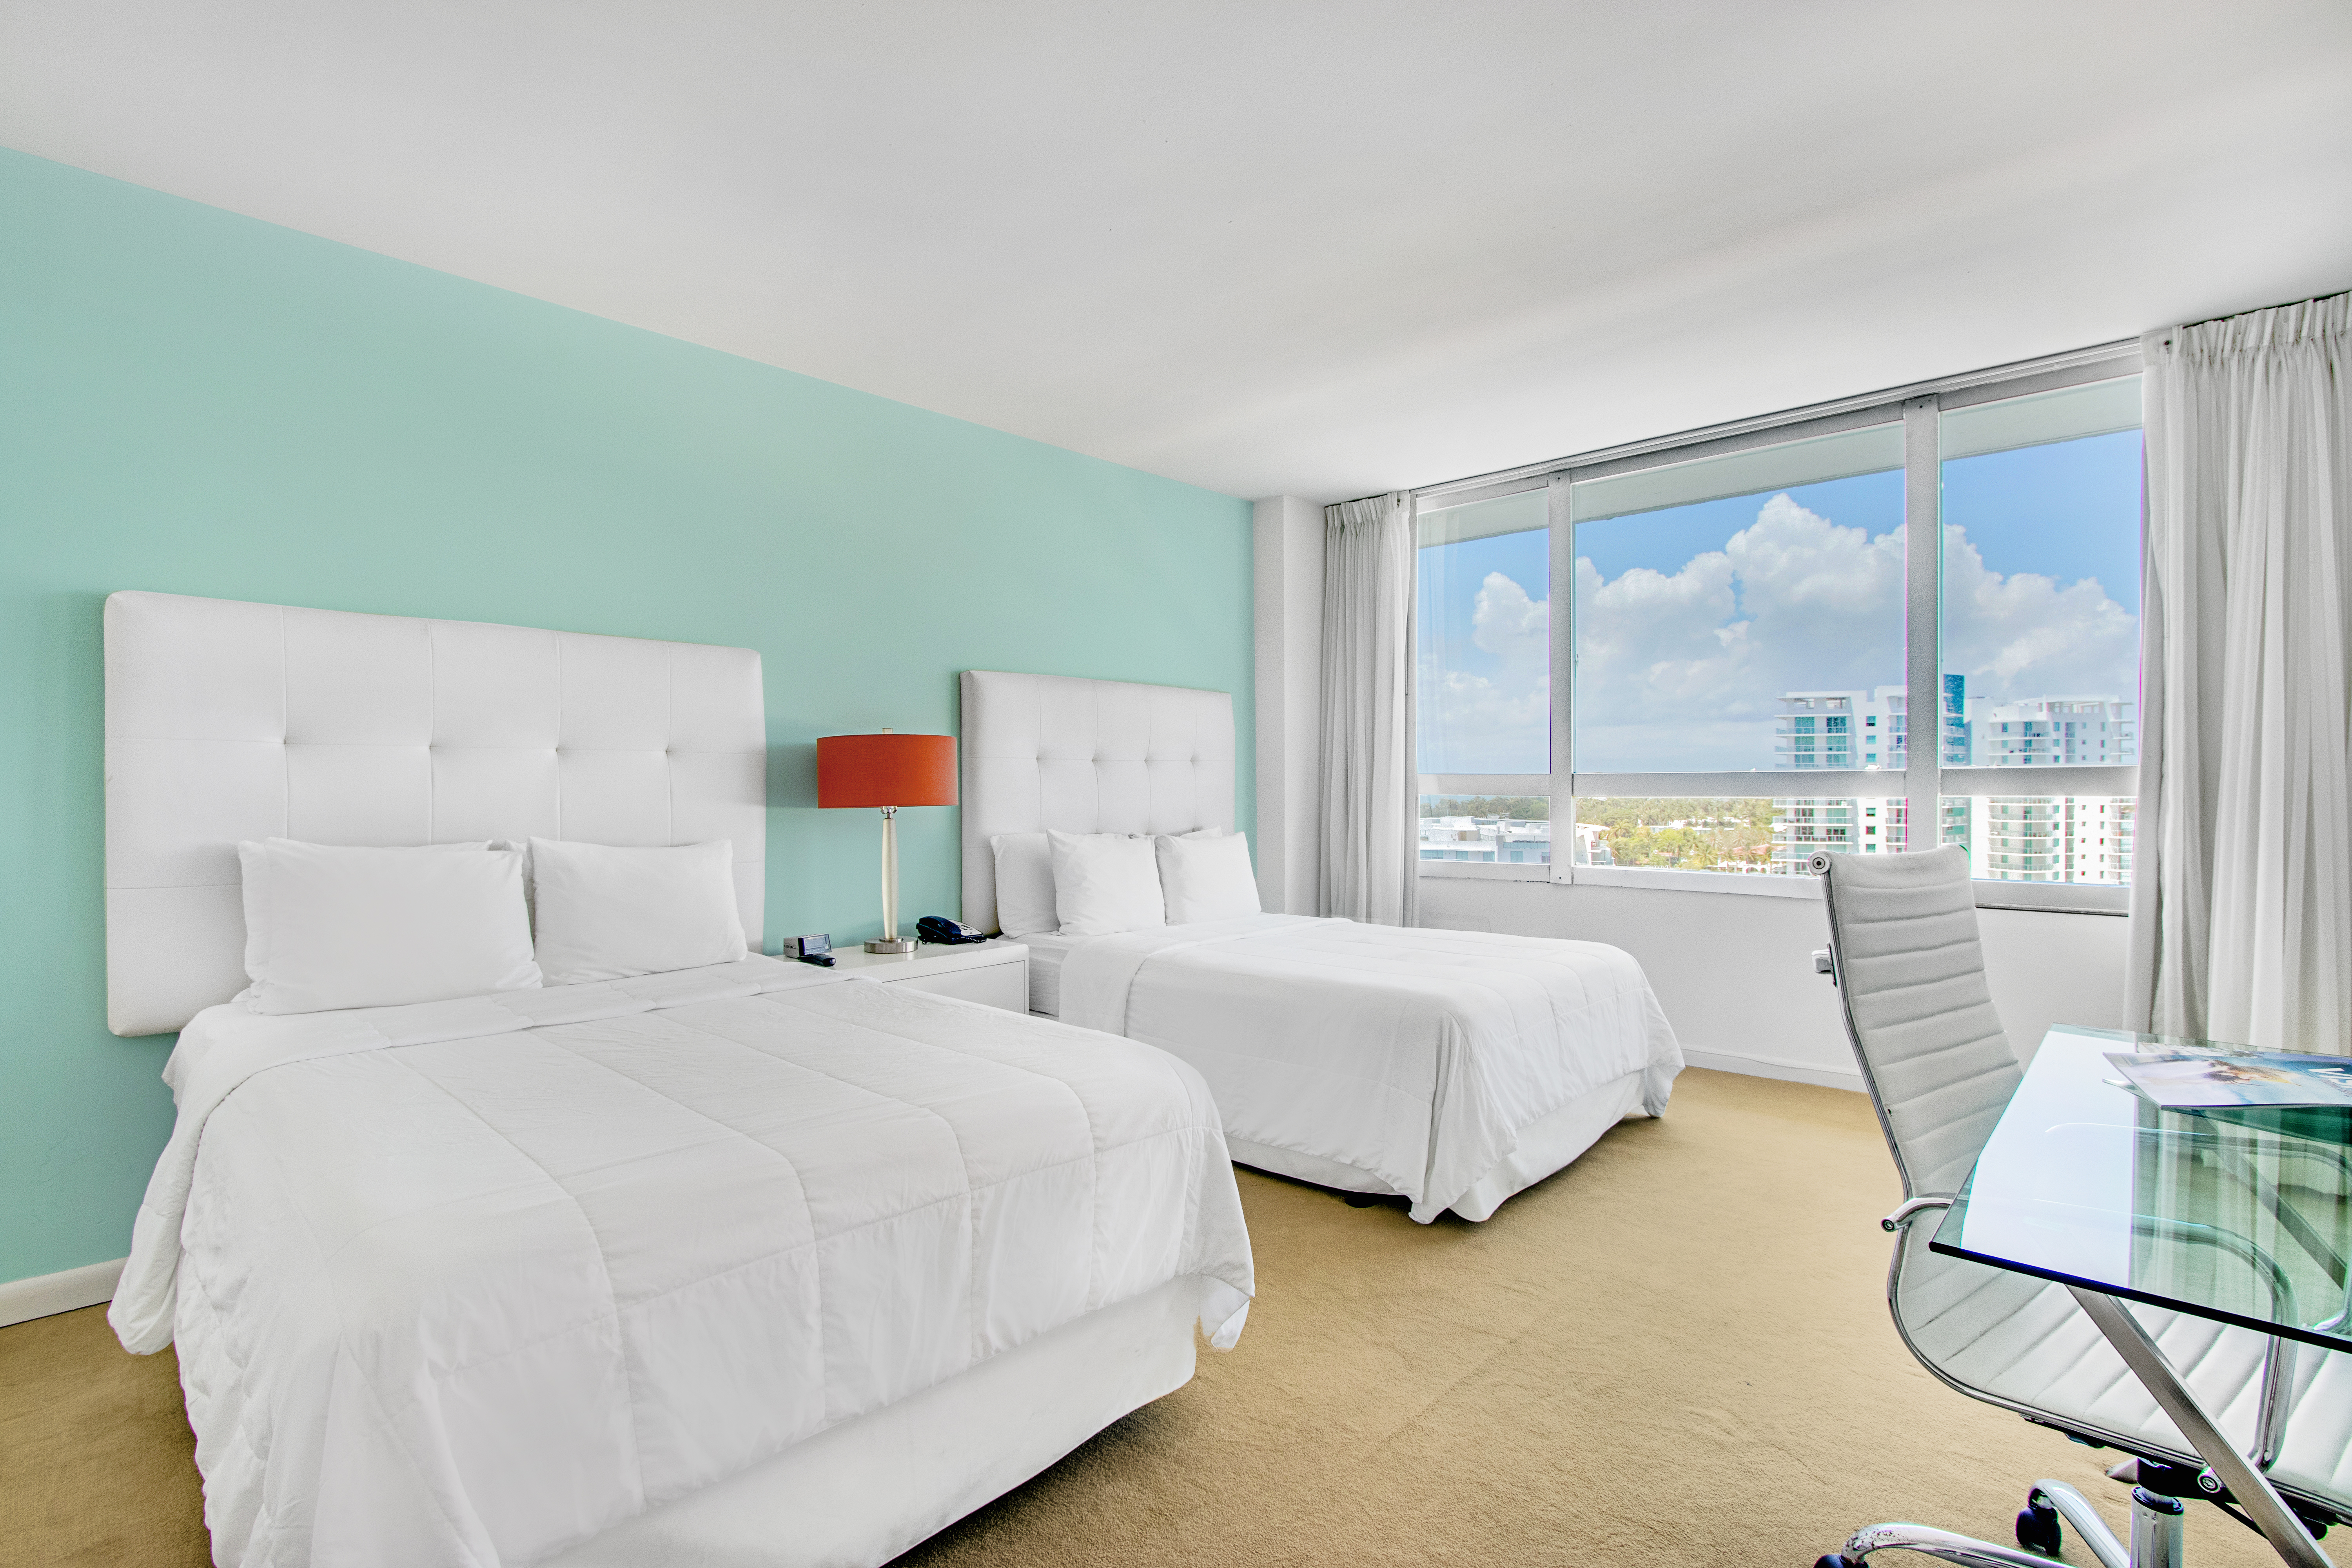 Deluxe city view 2 Double Beds room at the Deauville Beach Resort